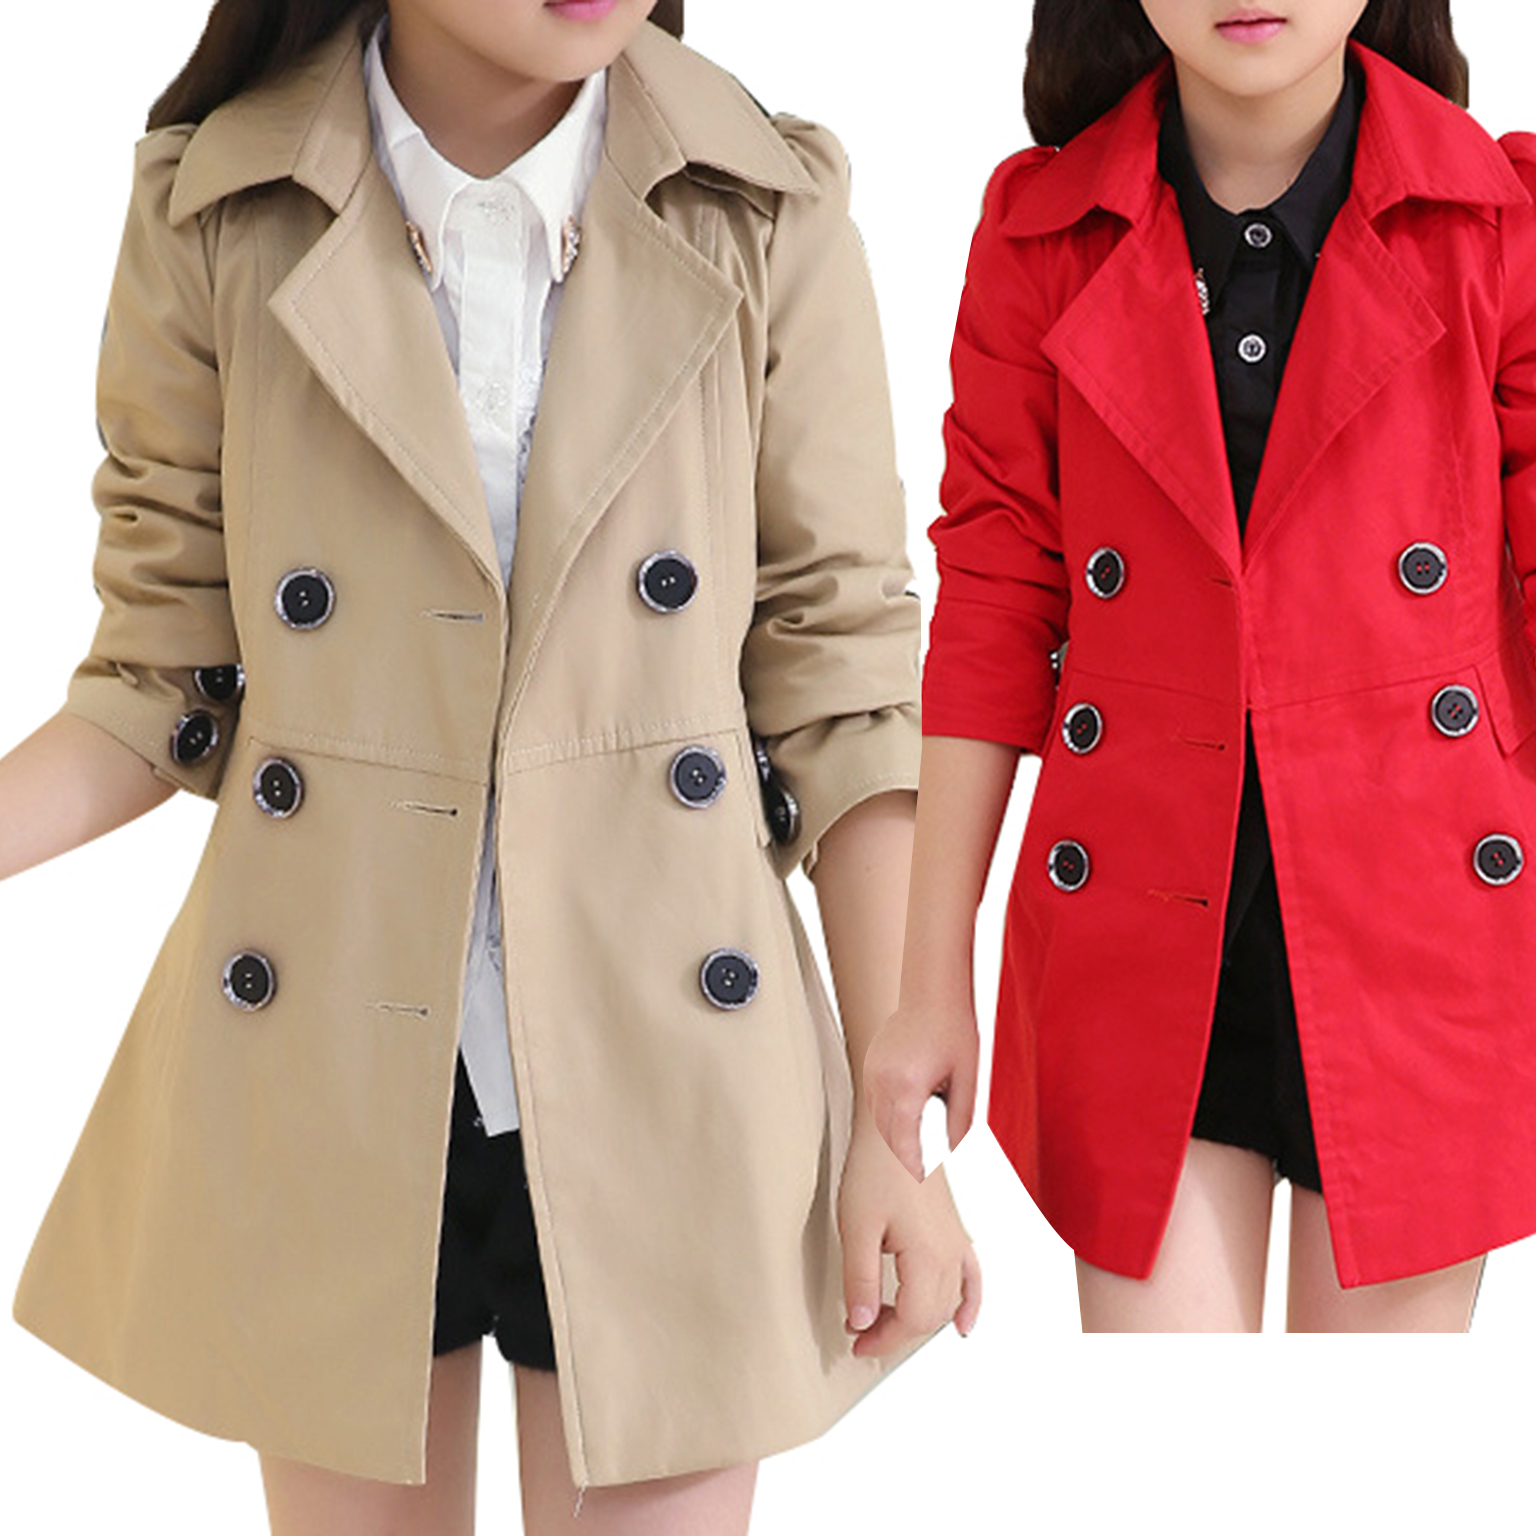 купить High Quality Girl Child Kid Lapel Double Breasted Outwear Pea Trench Coat по цене 1356.55 рублей